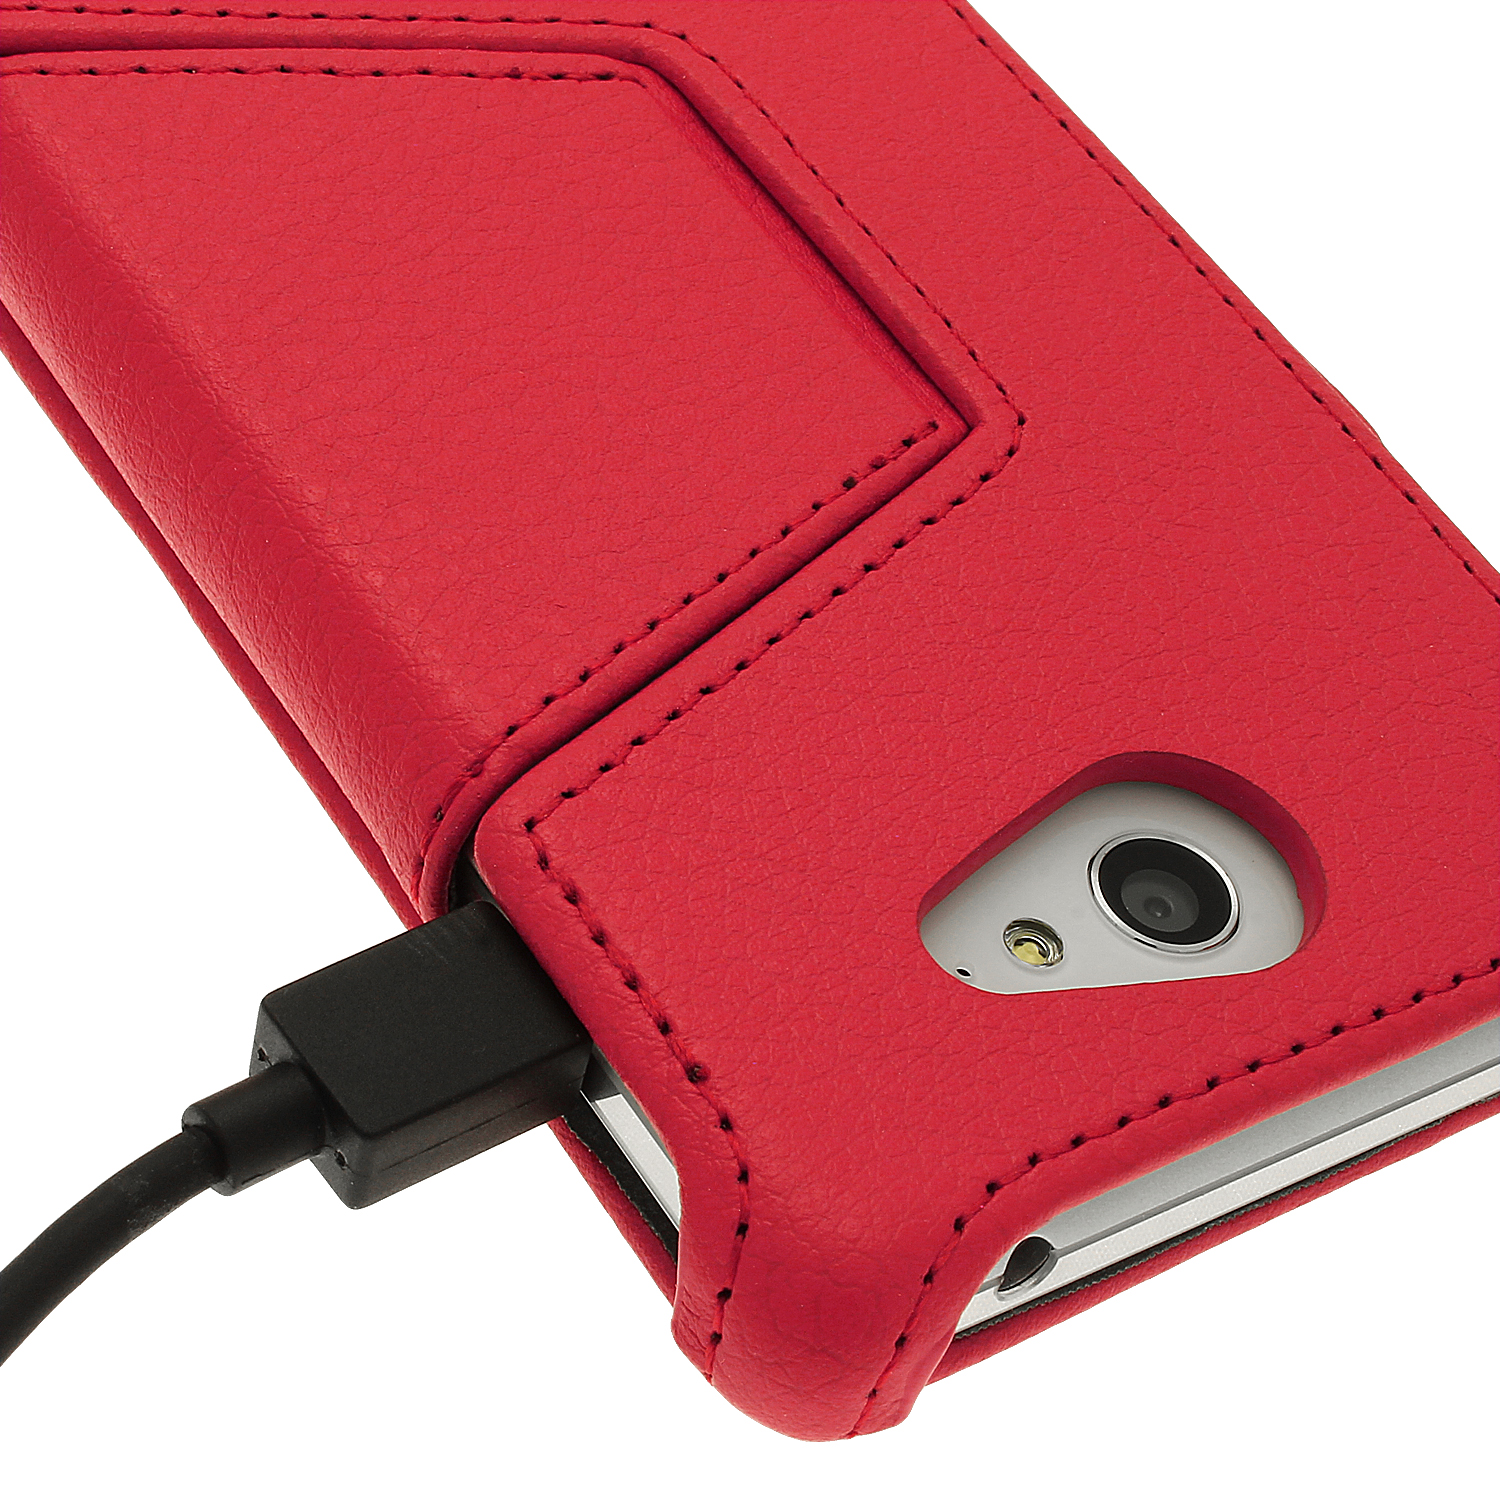 new styles 15259 46cc1 Details about PU Leather Skin Flip Case for Sony Xperia M2 D2303 Folio  Stand Cover Screen Prot